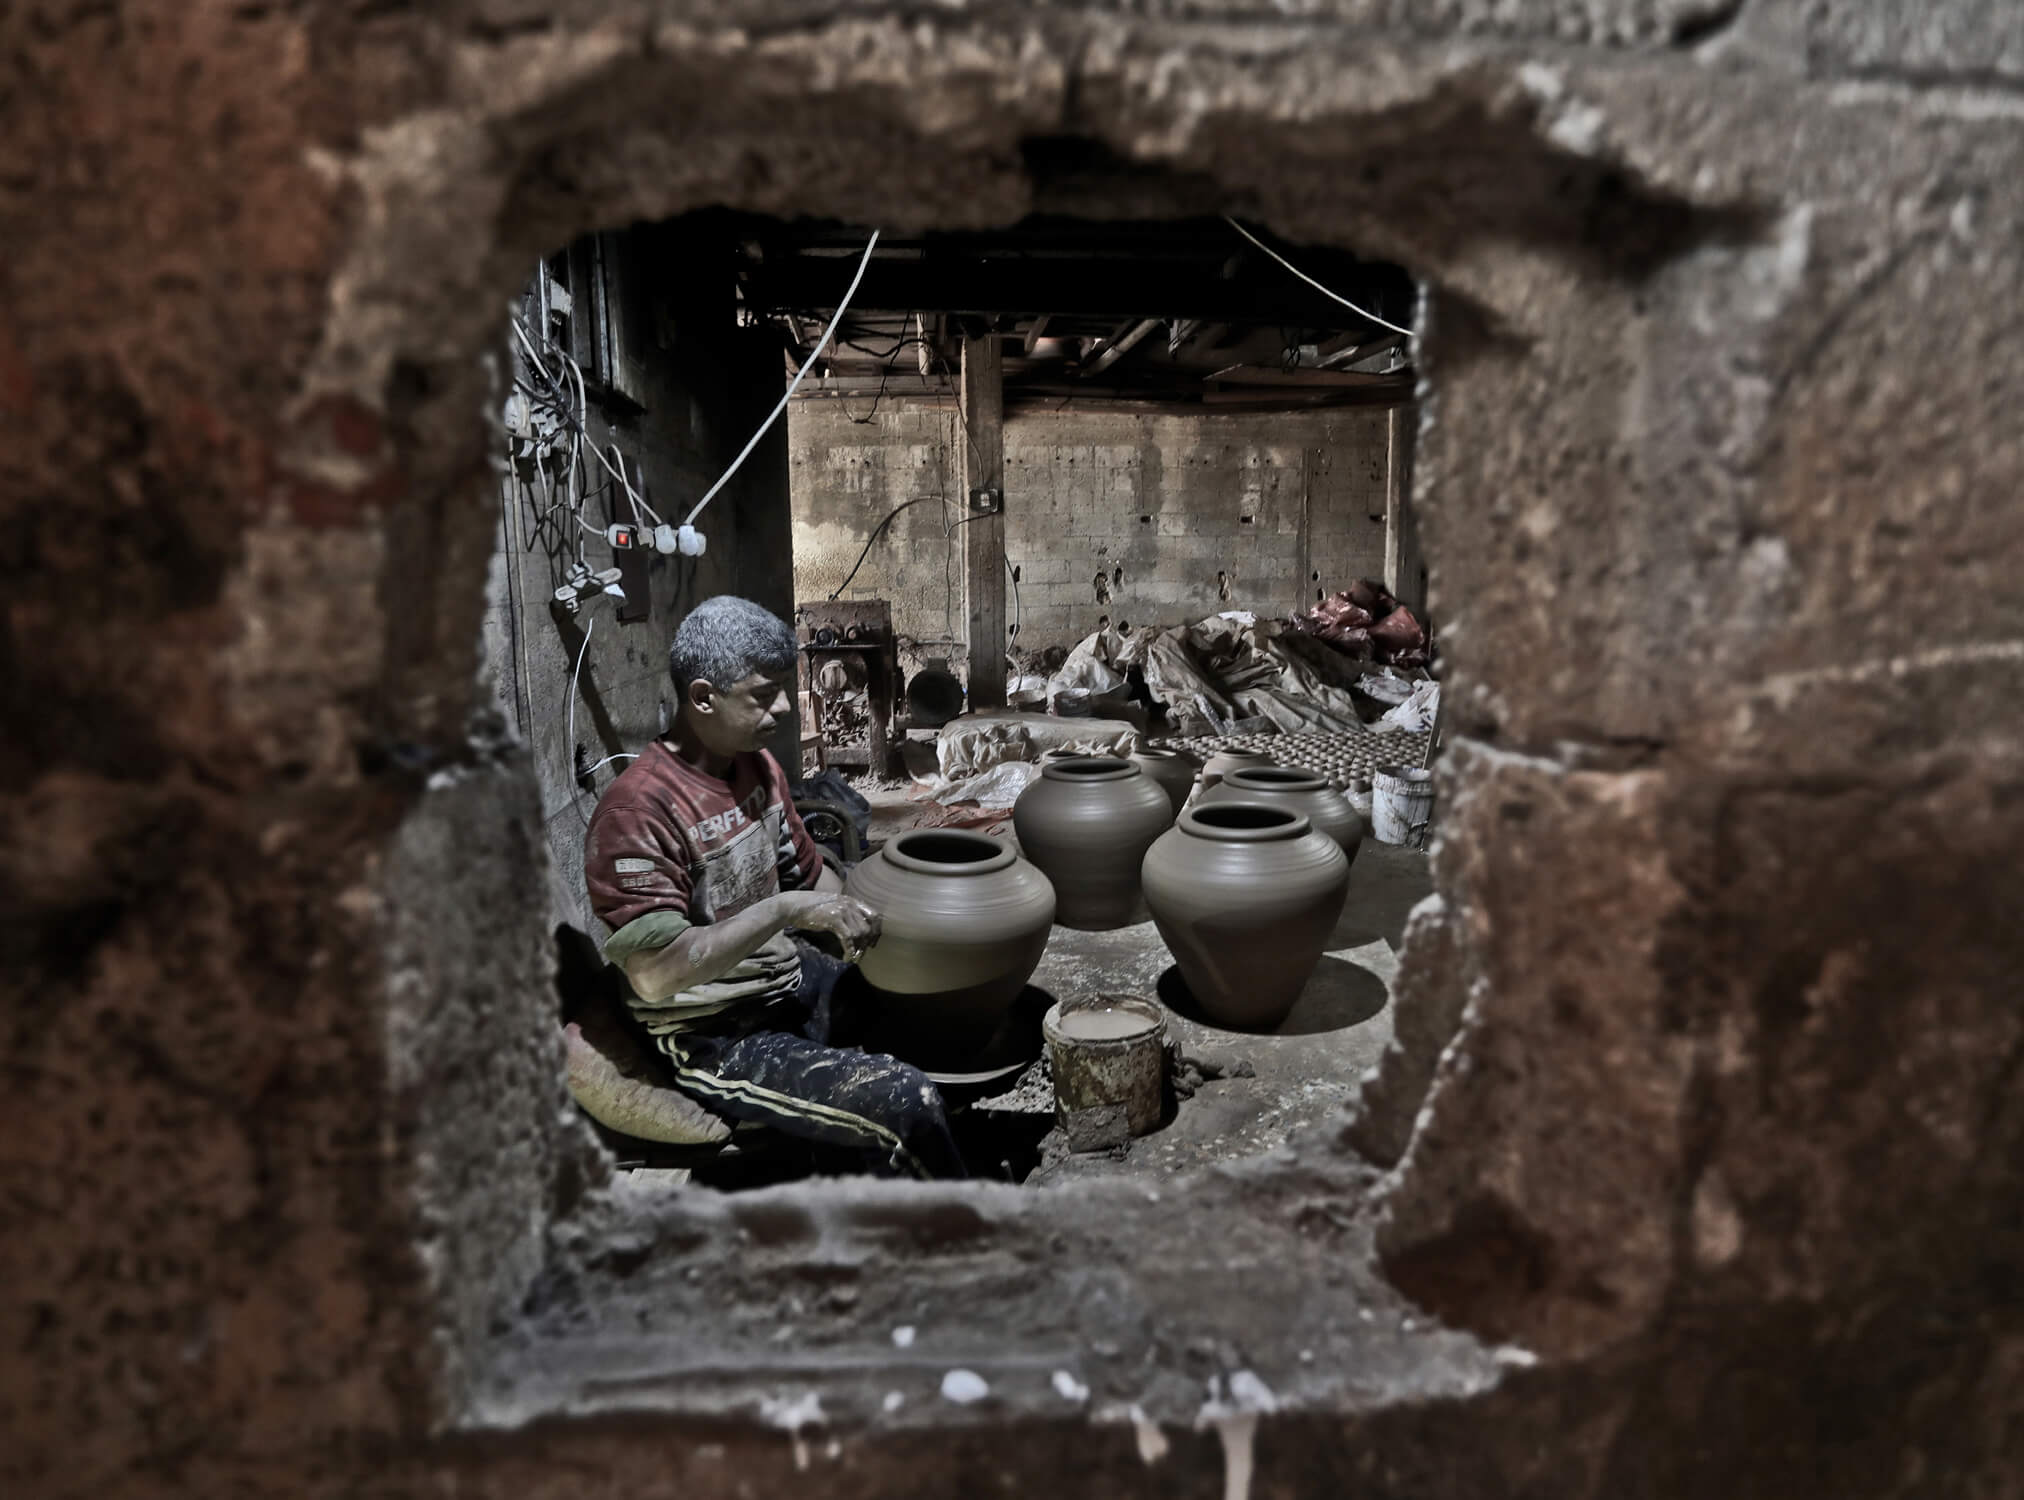 Palestinian handicrafter makes clay pots inside a factory which has been passed down through the generations of his family for centuries